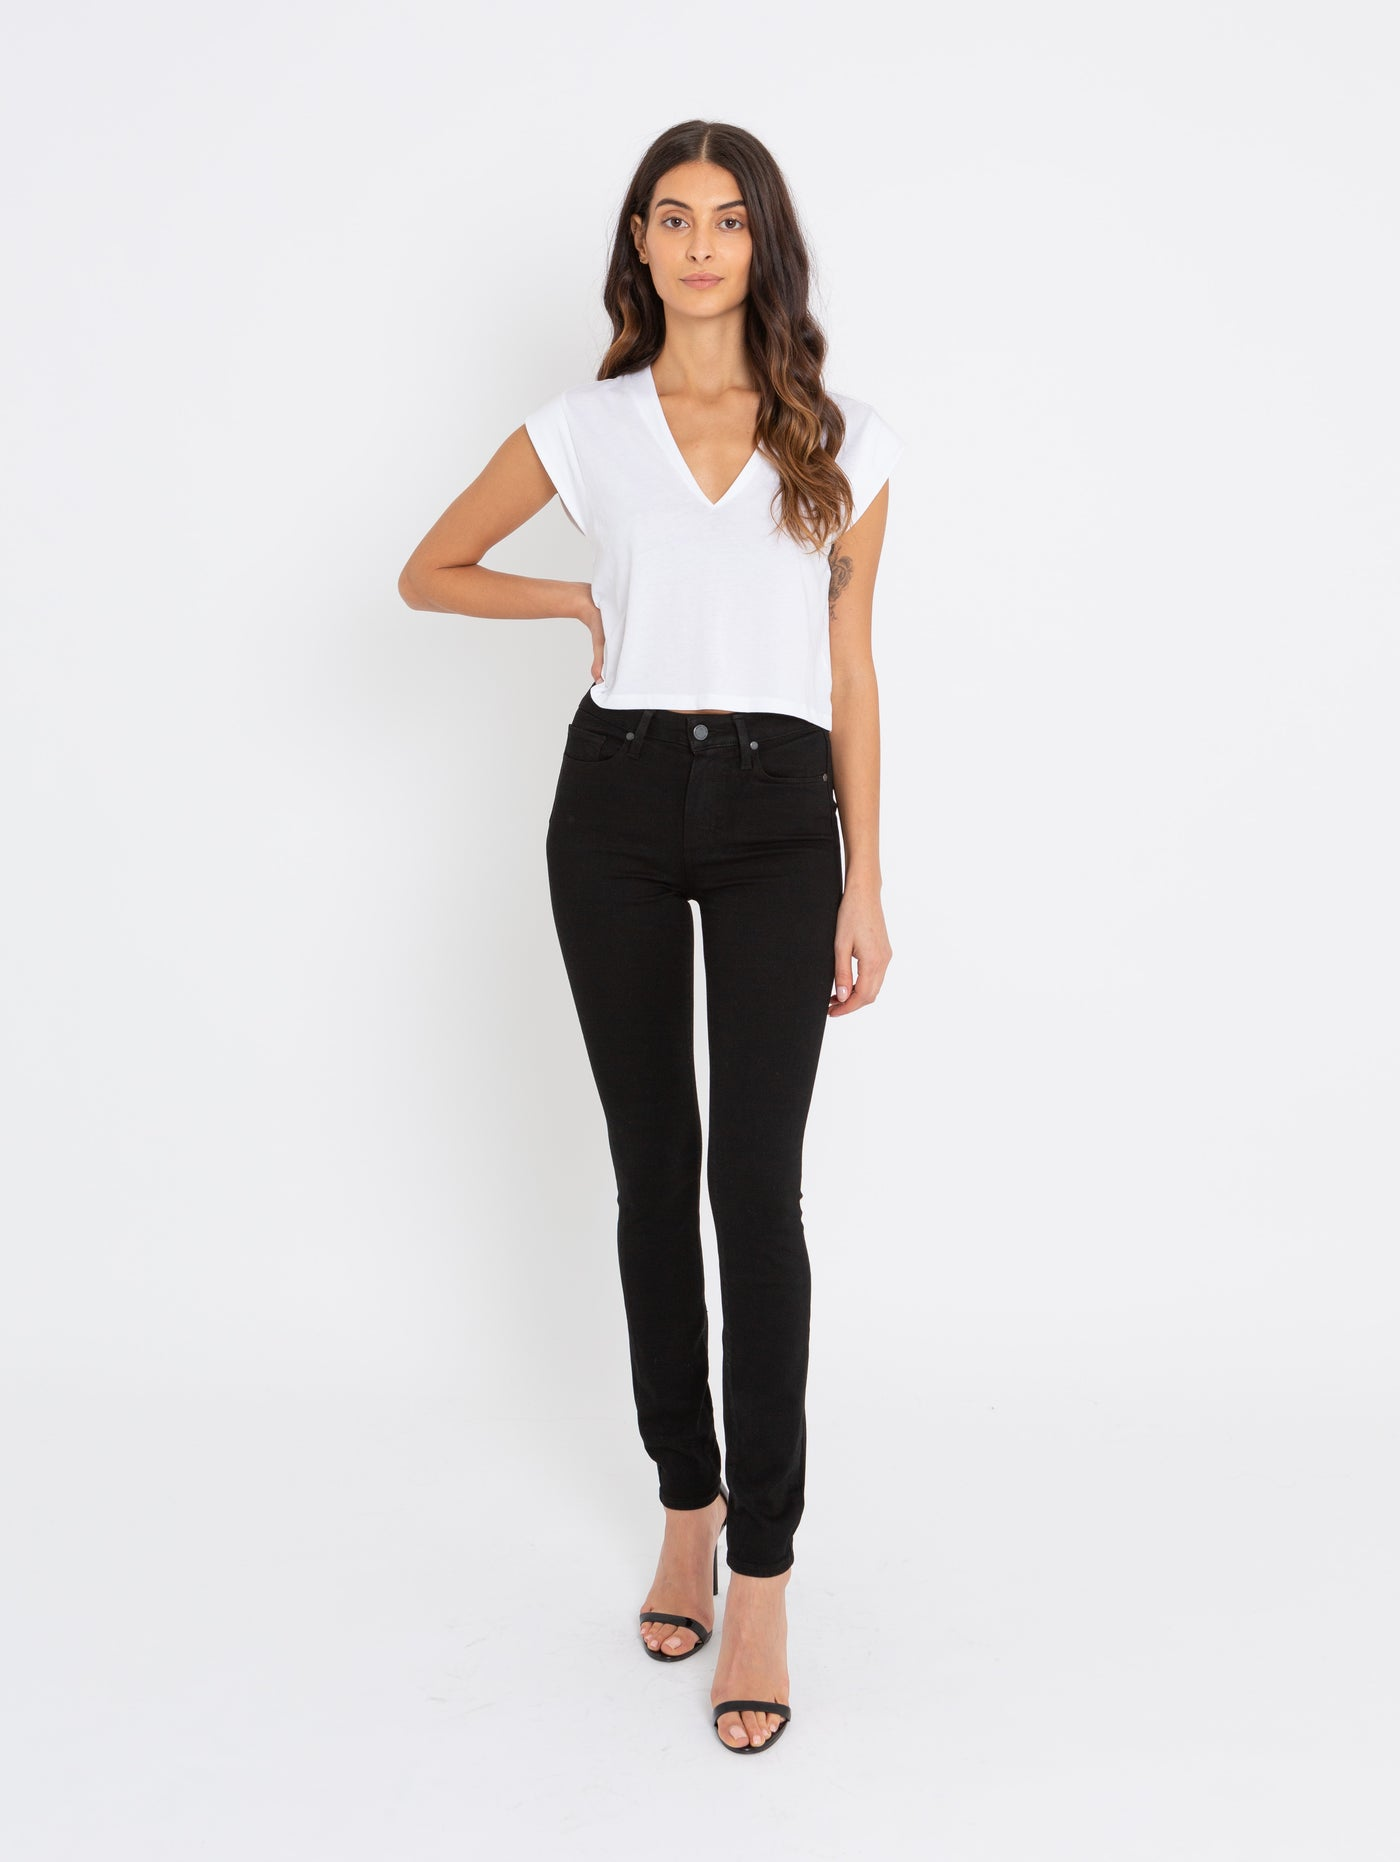 Hoxton High Waist Ultra Skinny Jean - Black Shadow-Paige-Over the Rainbow